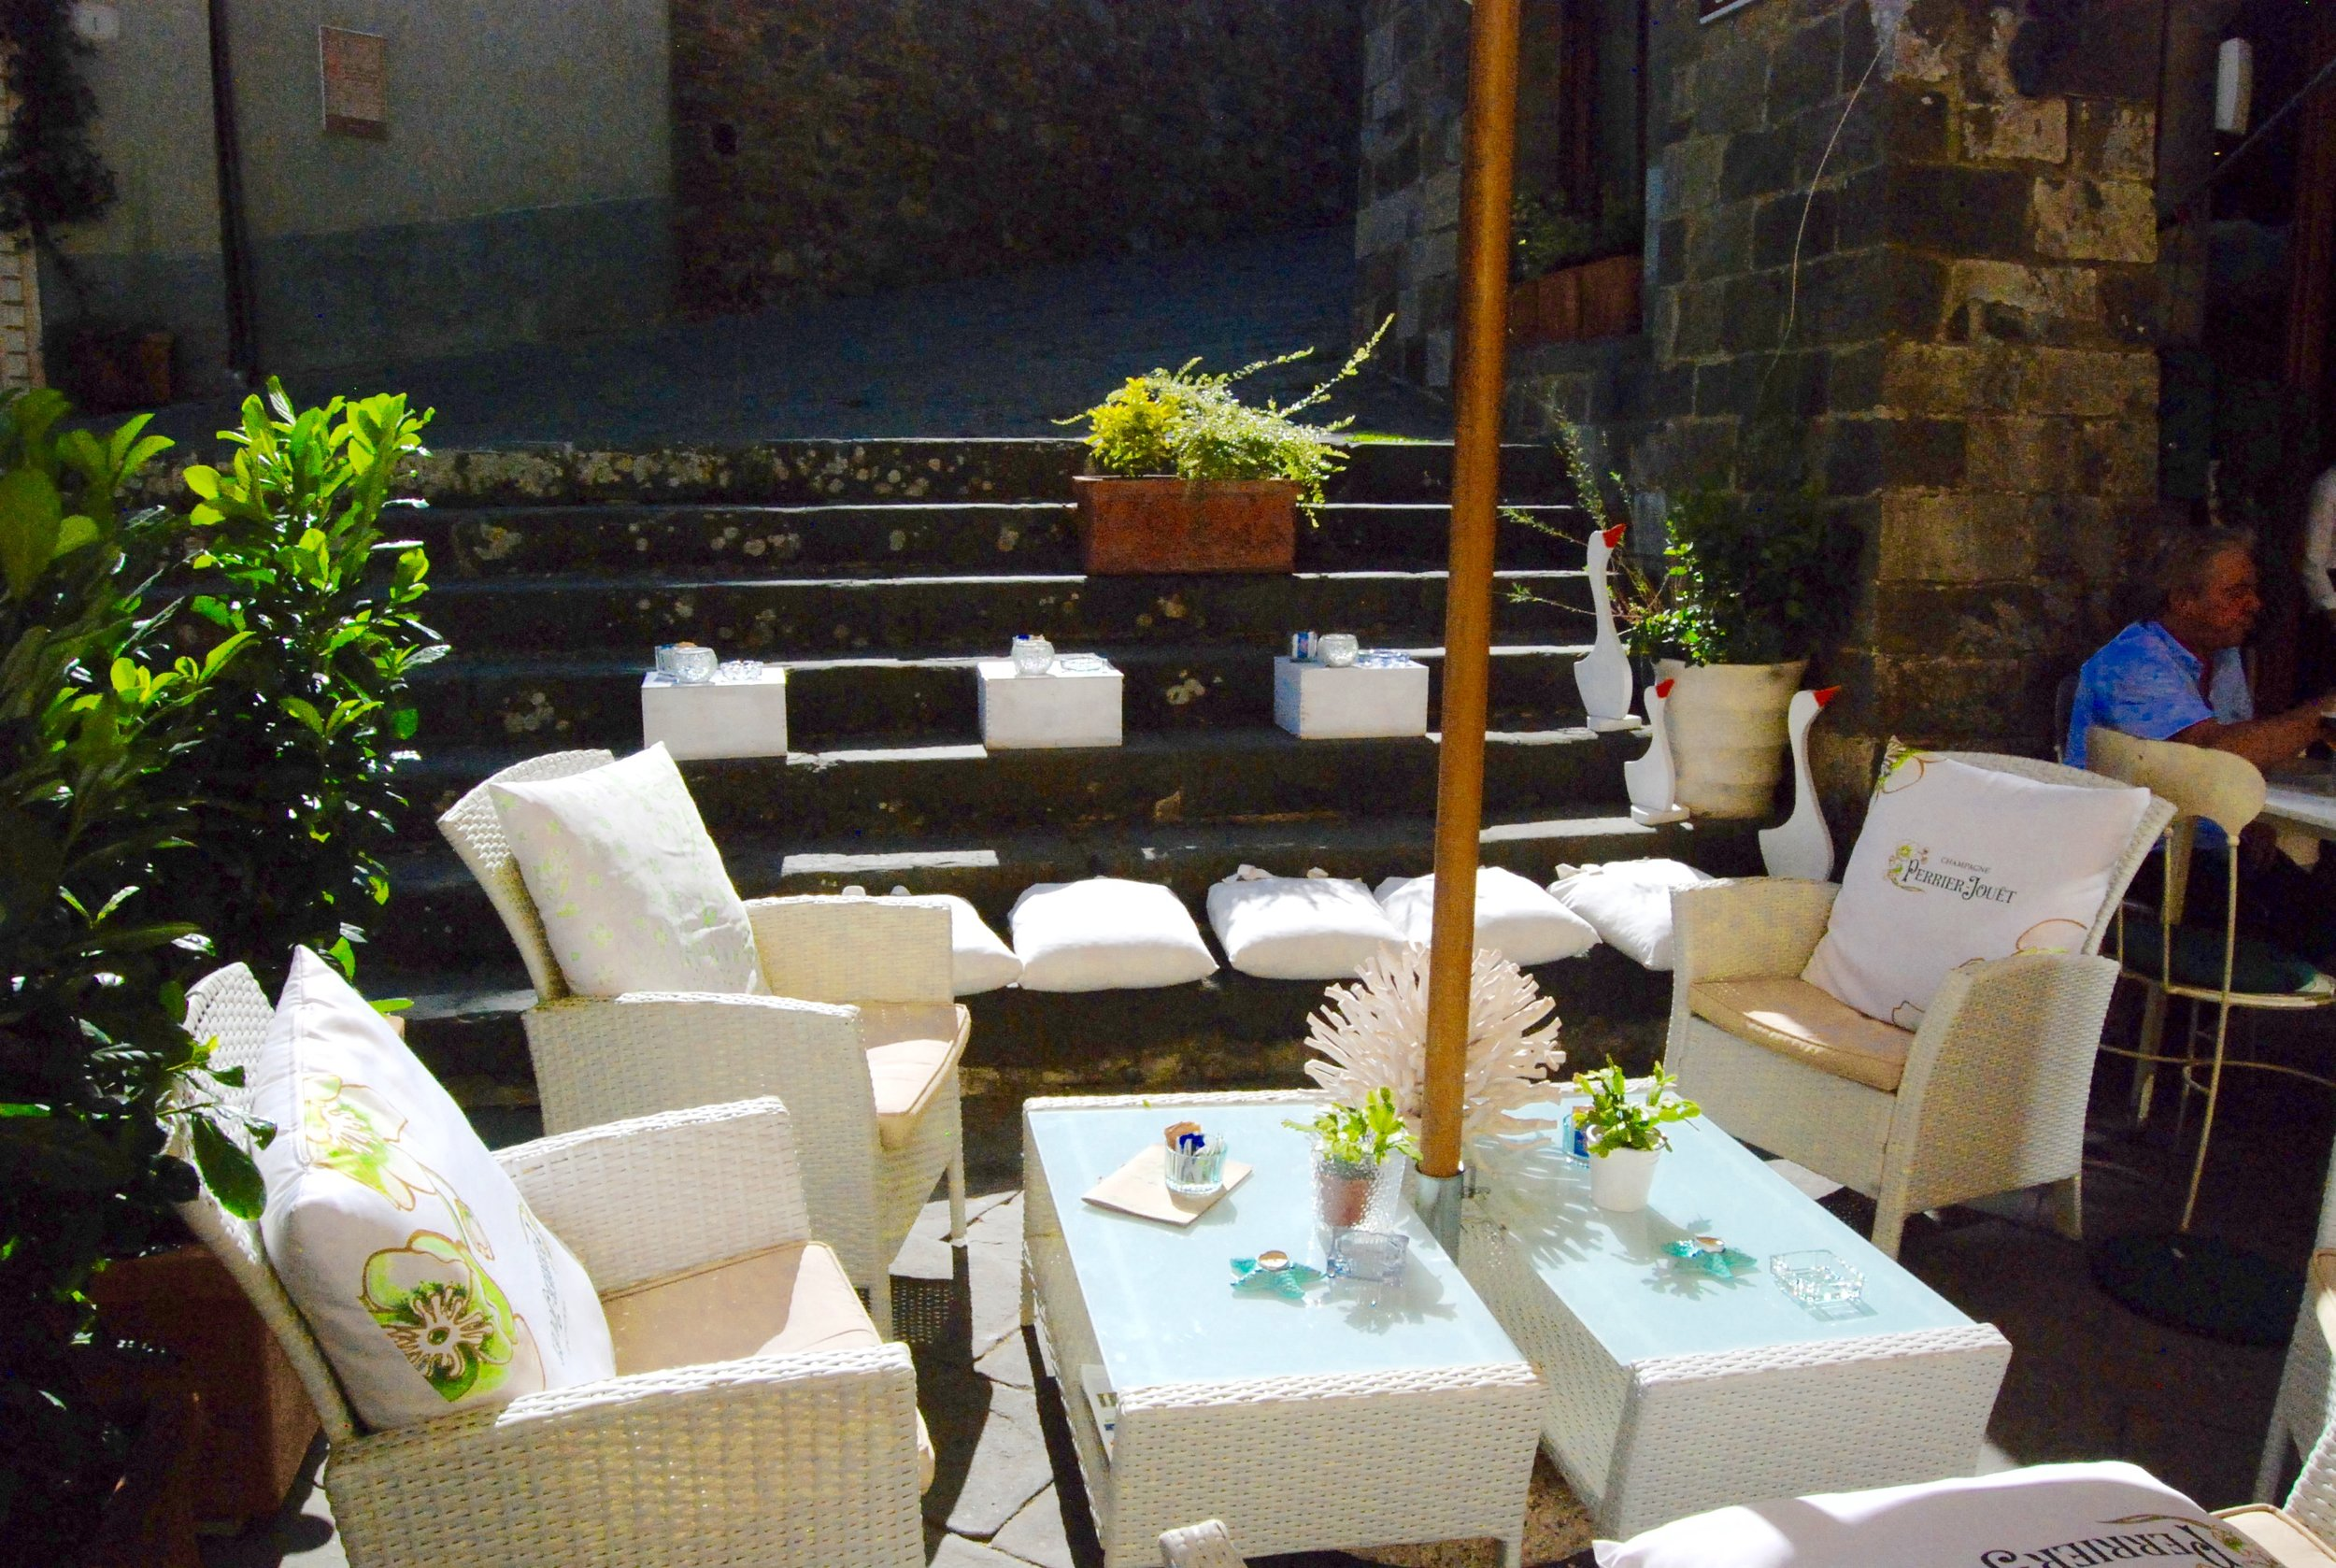 One of the many cozy cafes in downtown Montalcino, Italy.